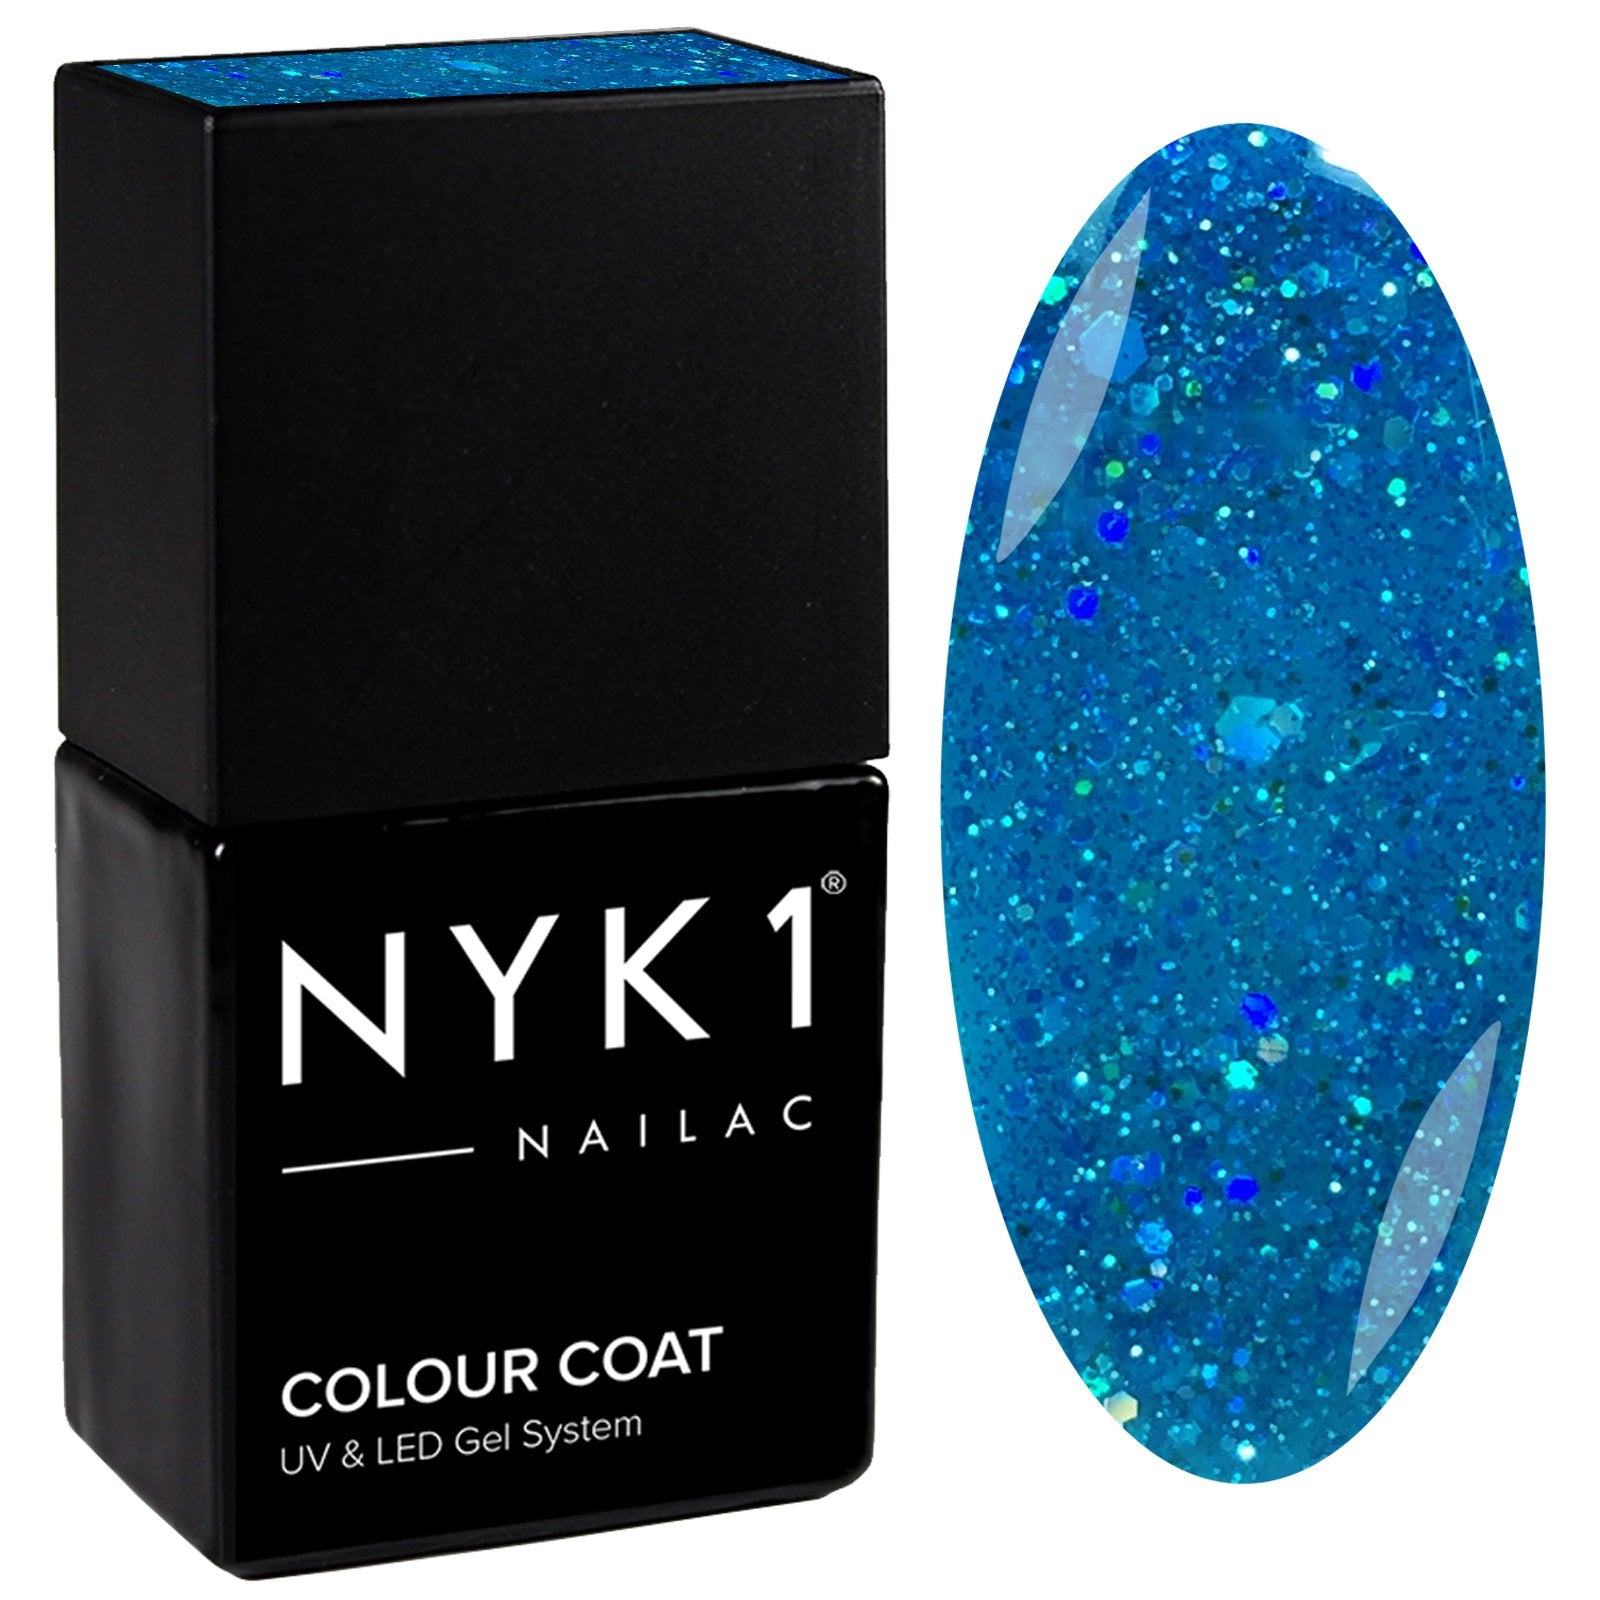 NYK1 Nailac Blue Mermaid Glitter Sparkle Gel Nail Polish